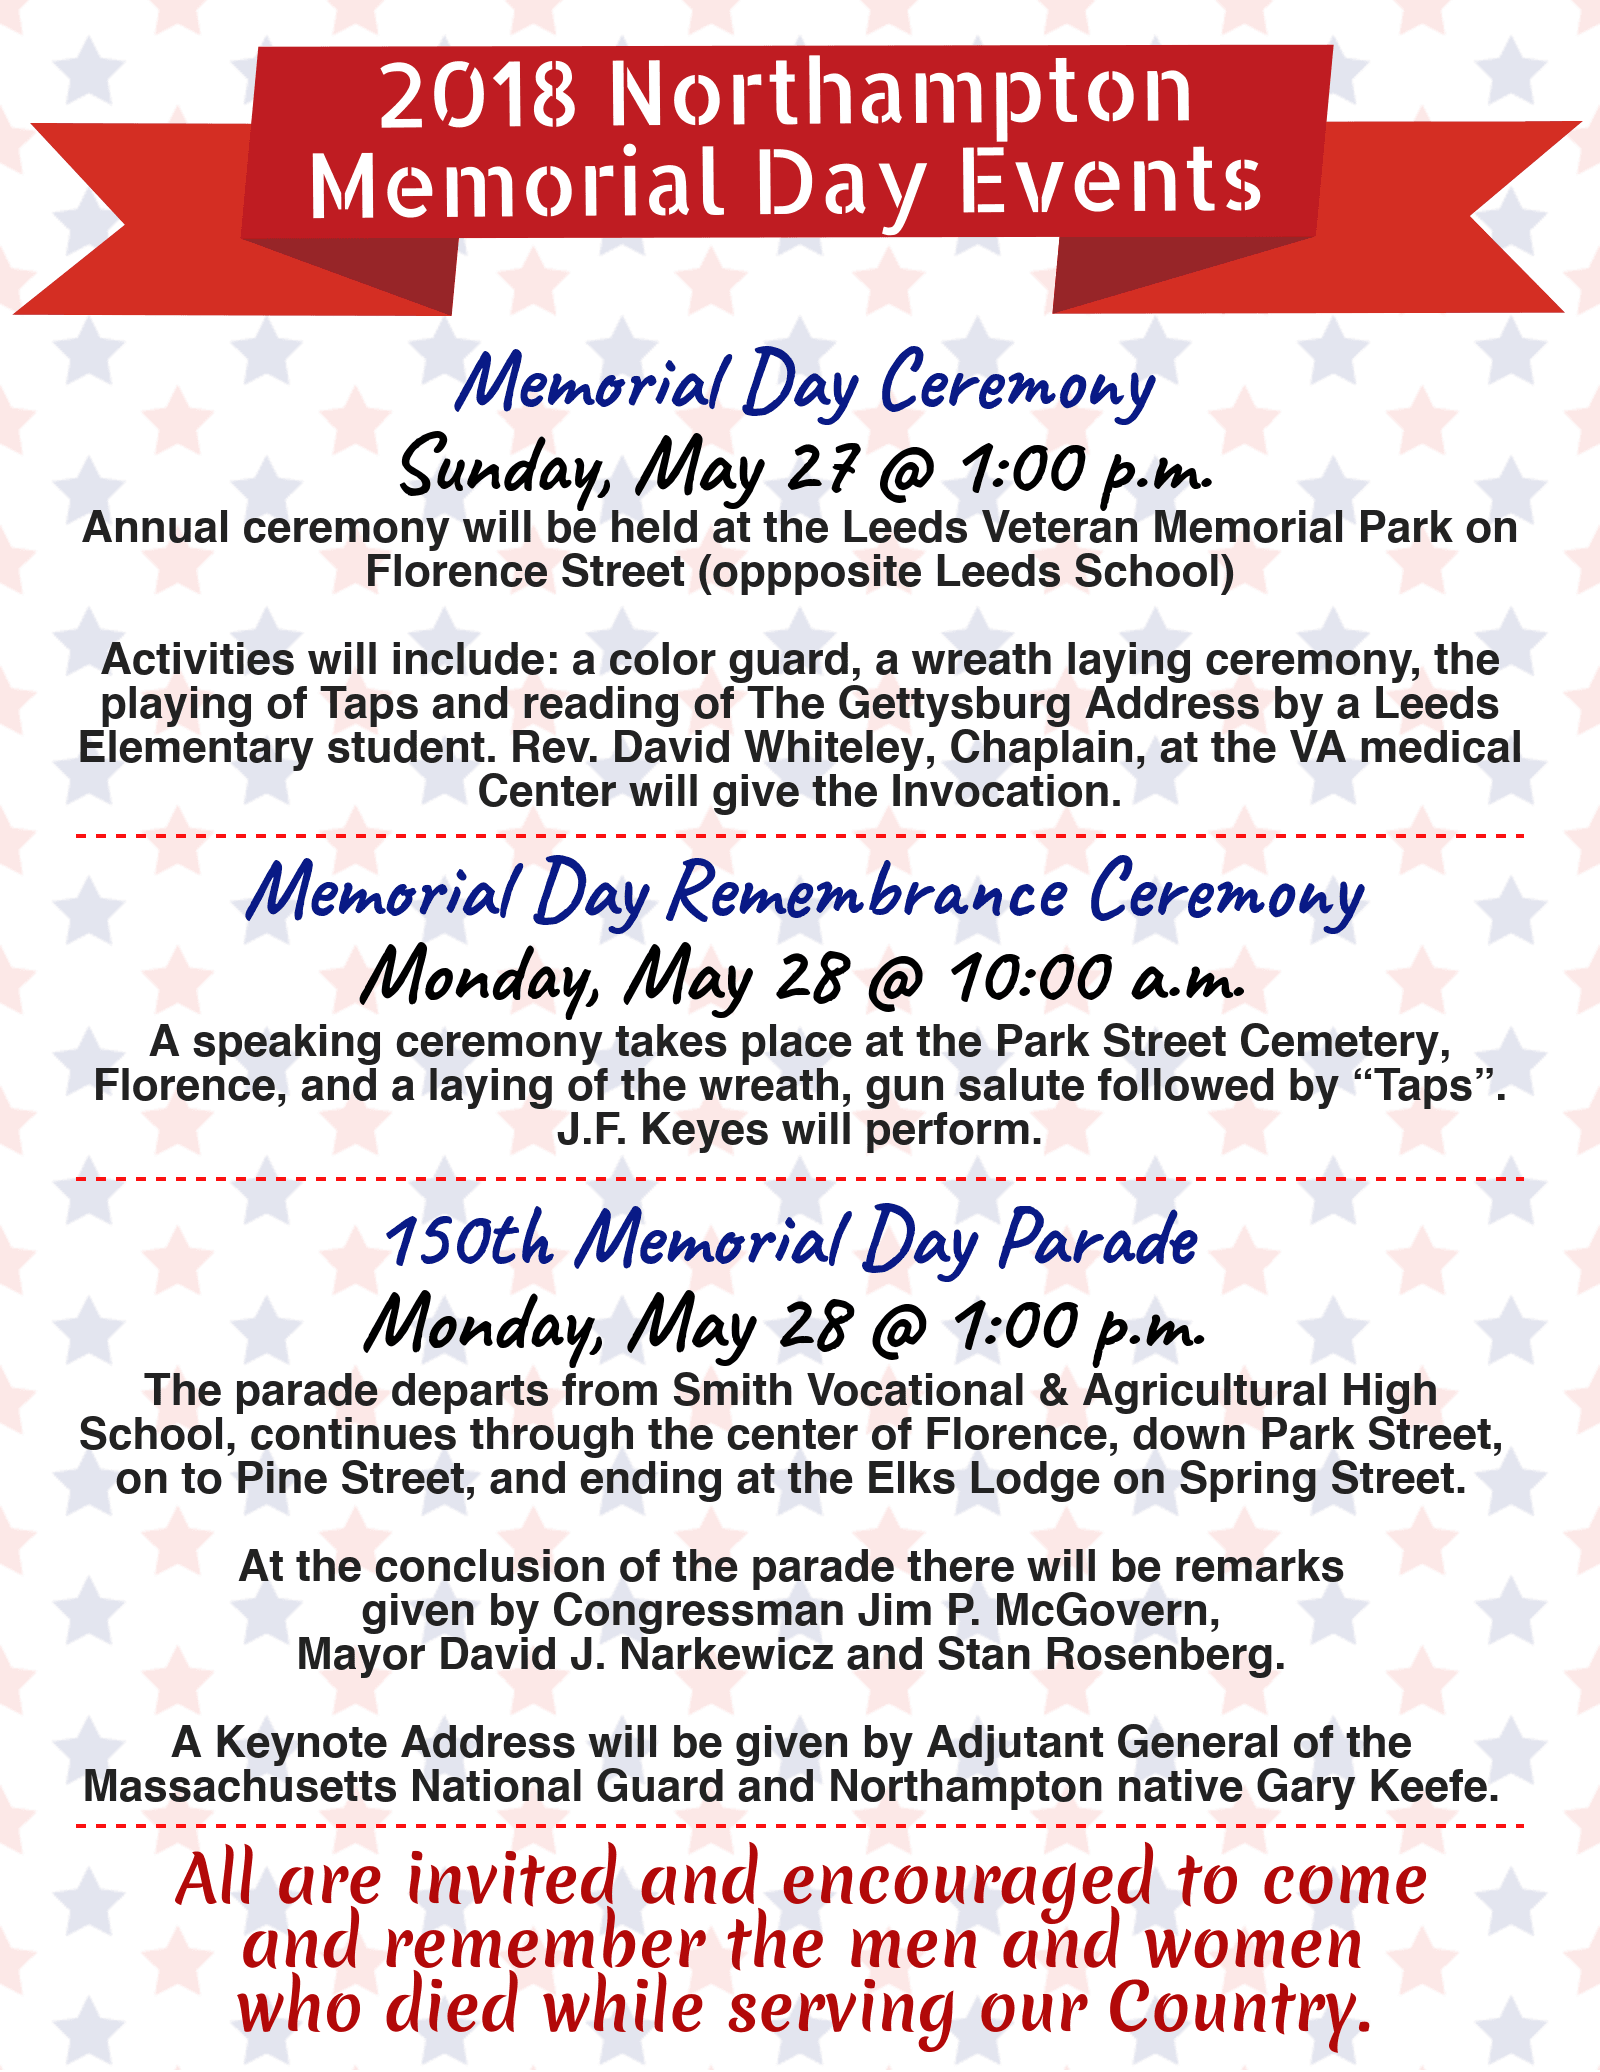 Memorial Day 2018 Events